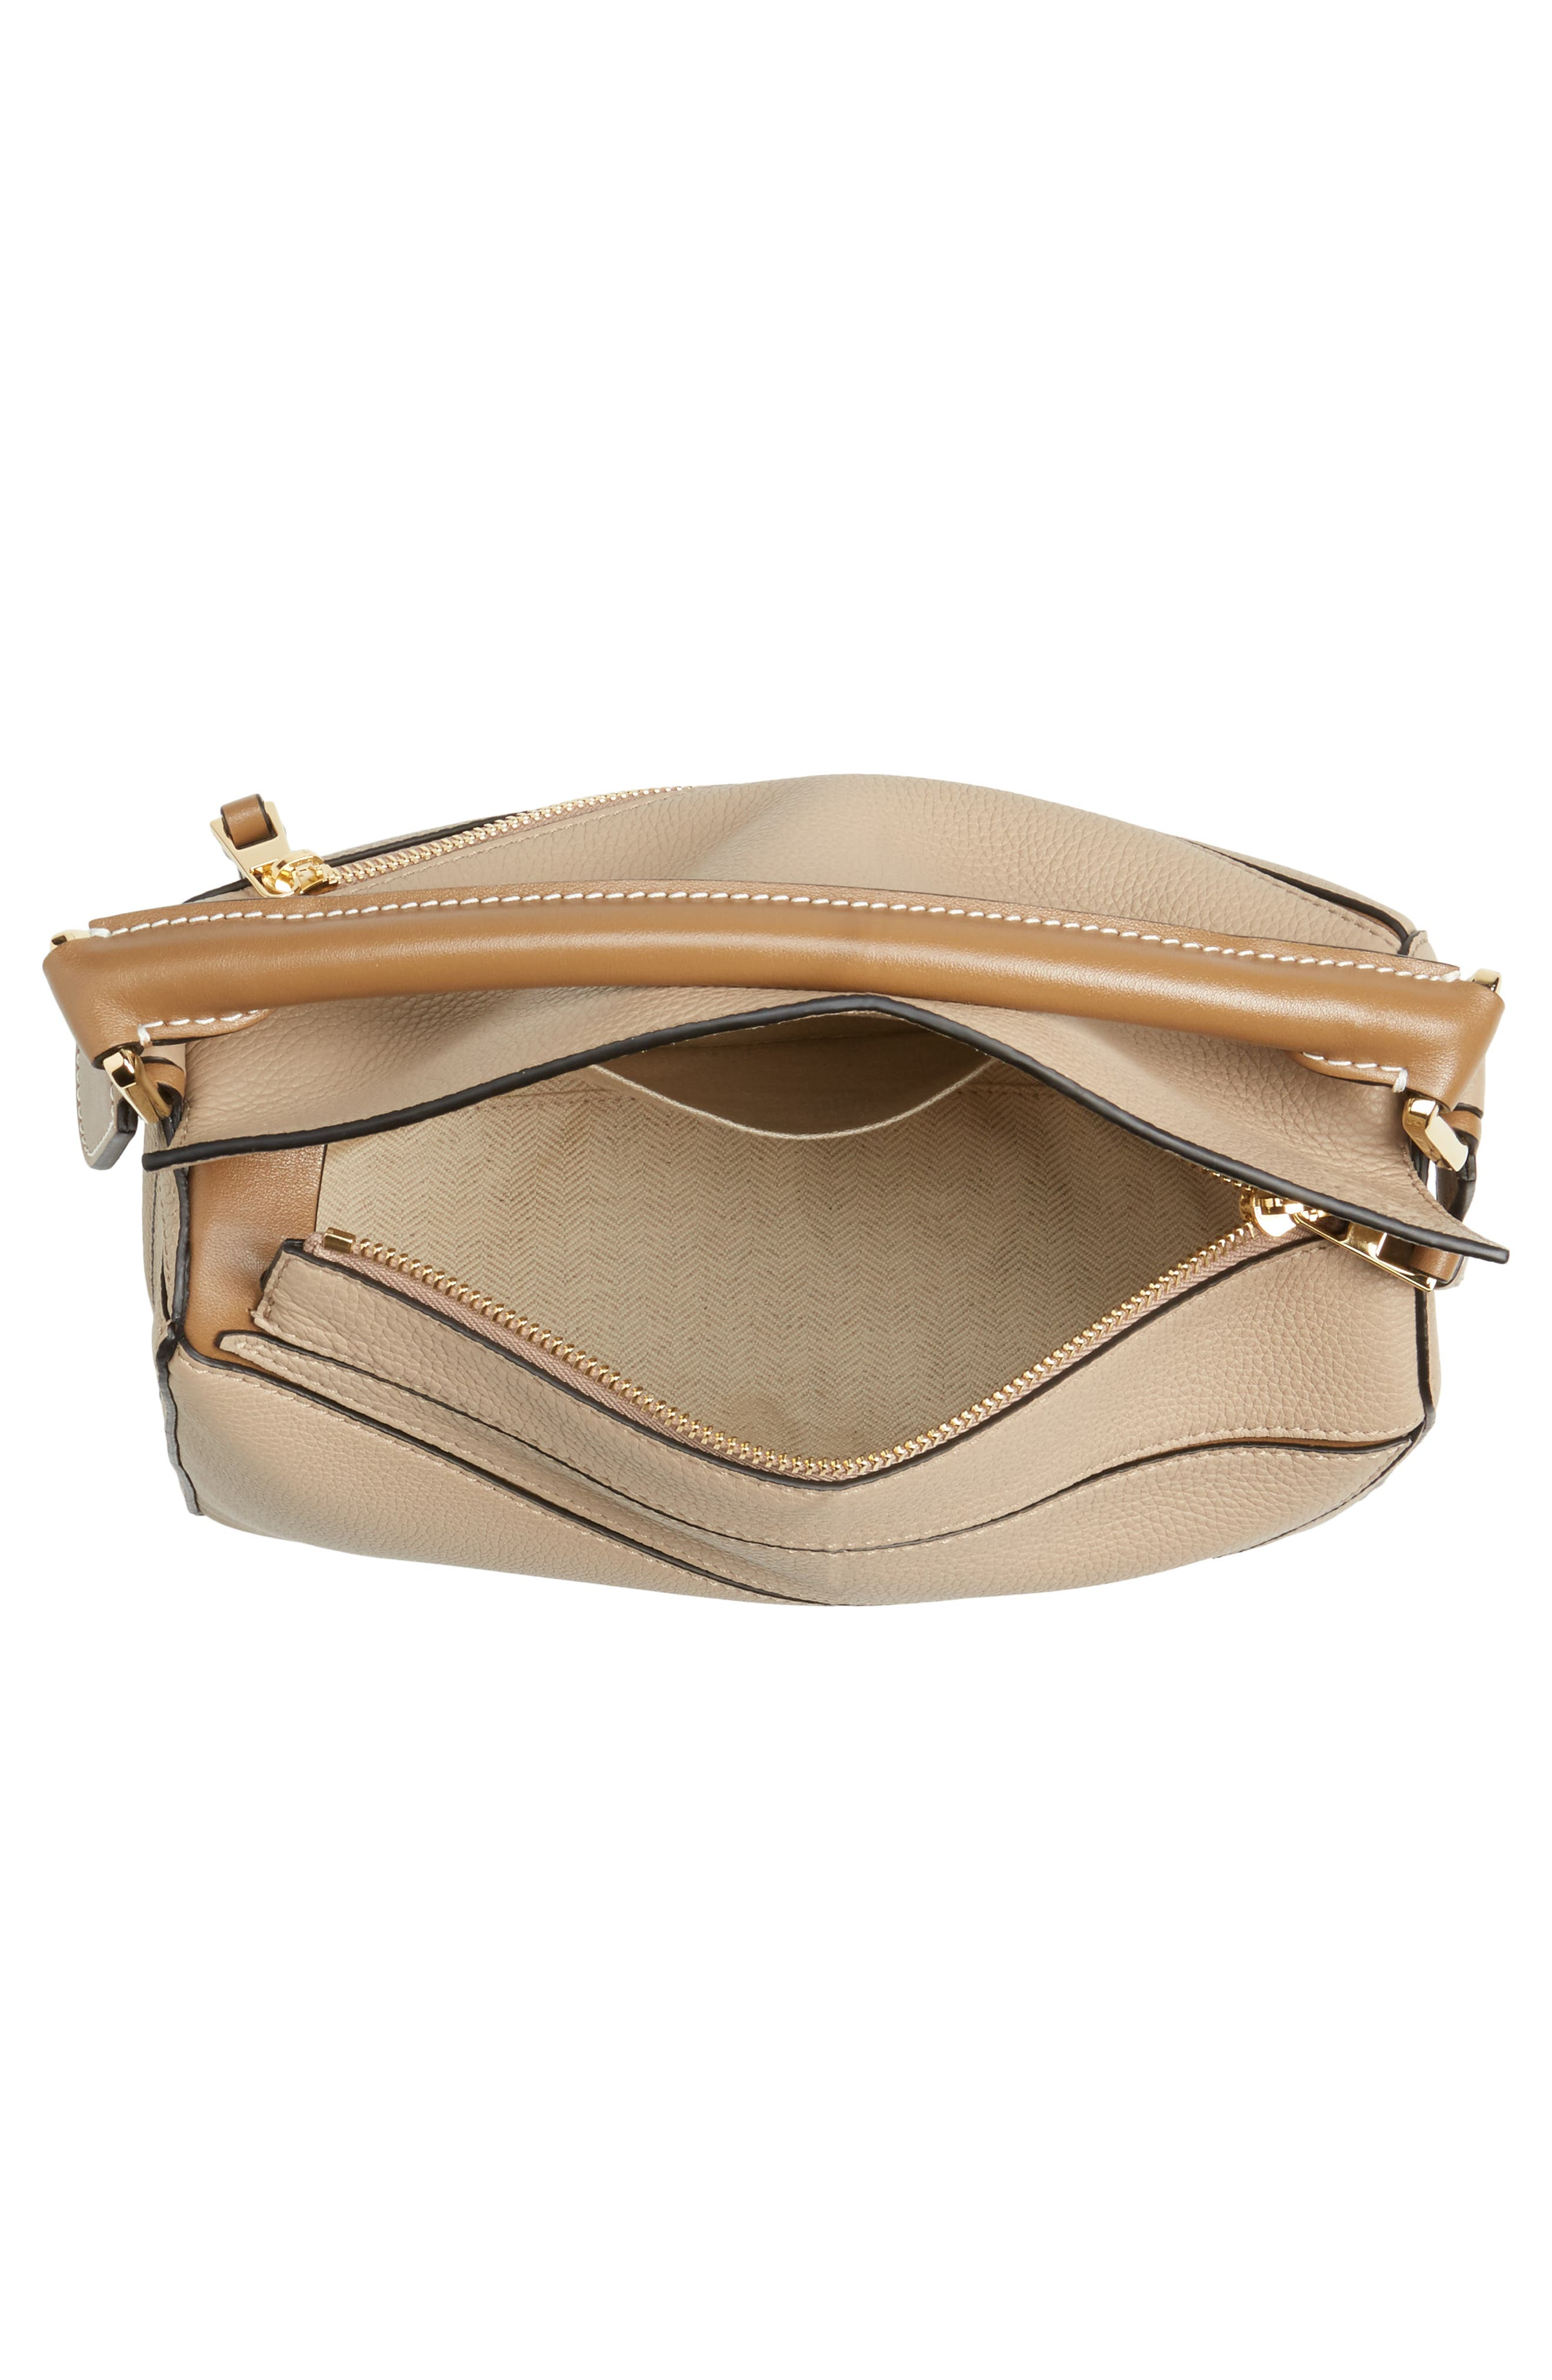 Small Puzzle Leather Bag,                             Alternate thumbnail 4, color,                             SAND/ MINK